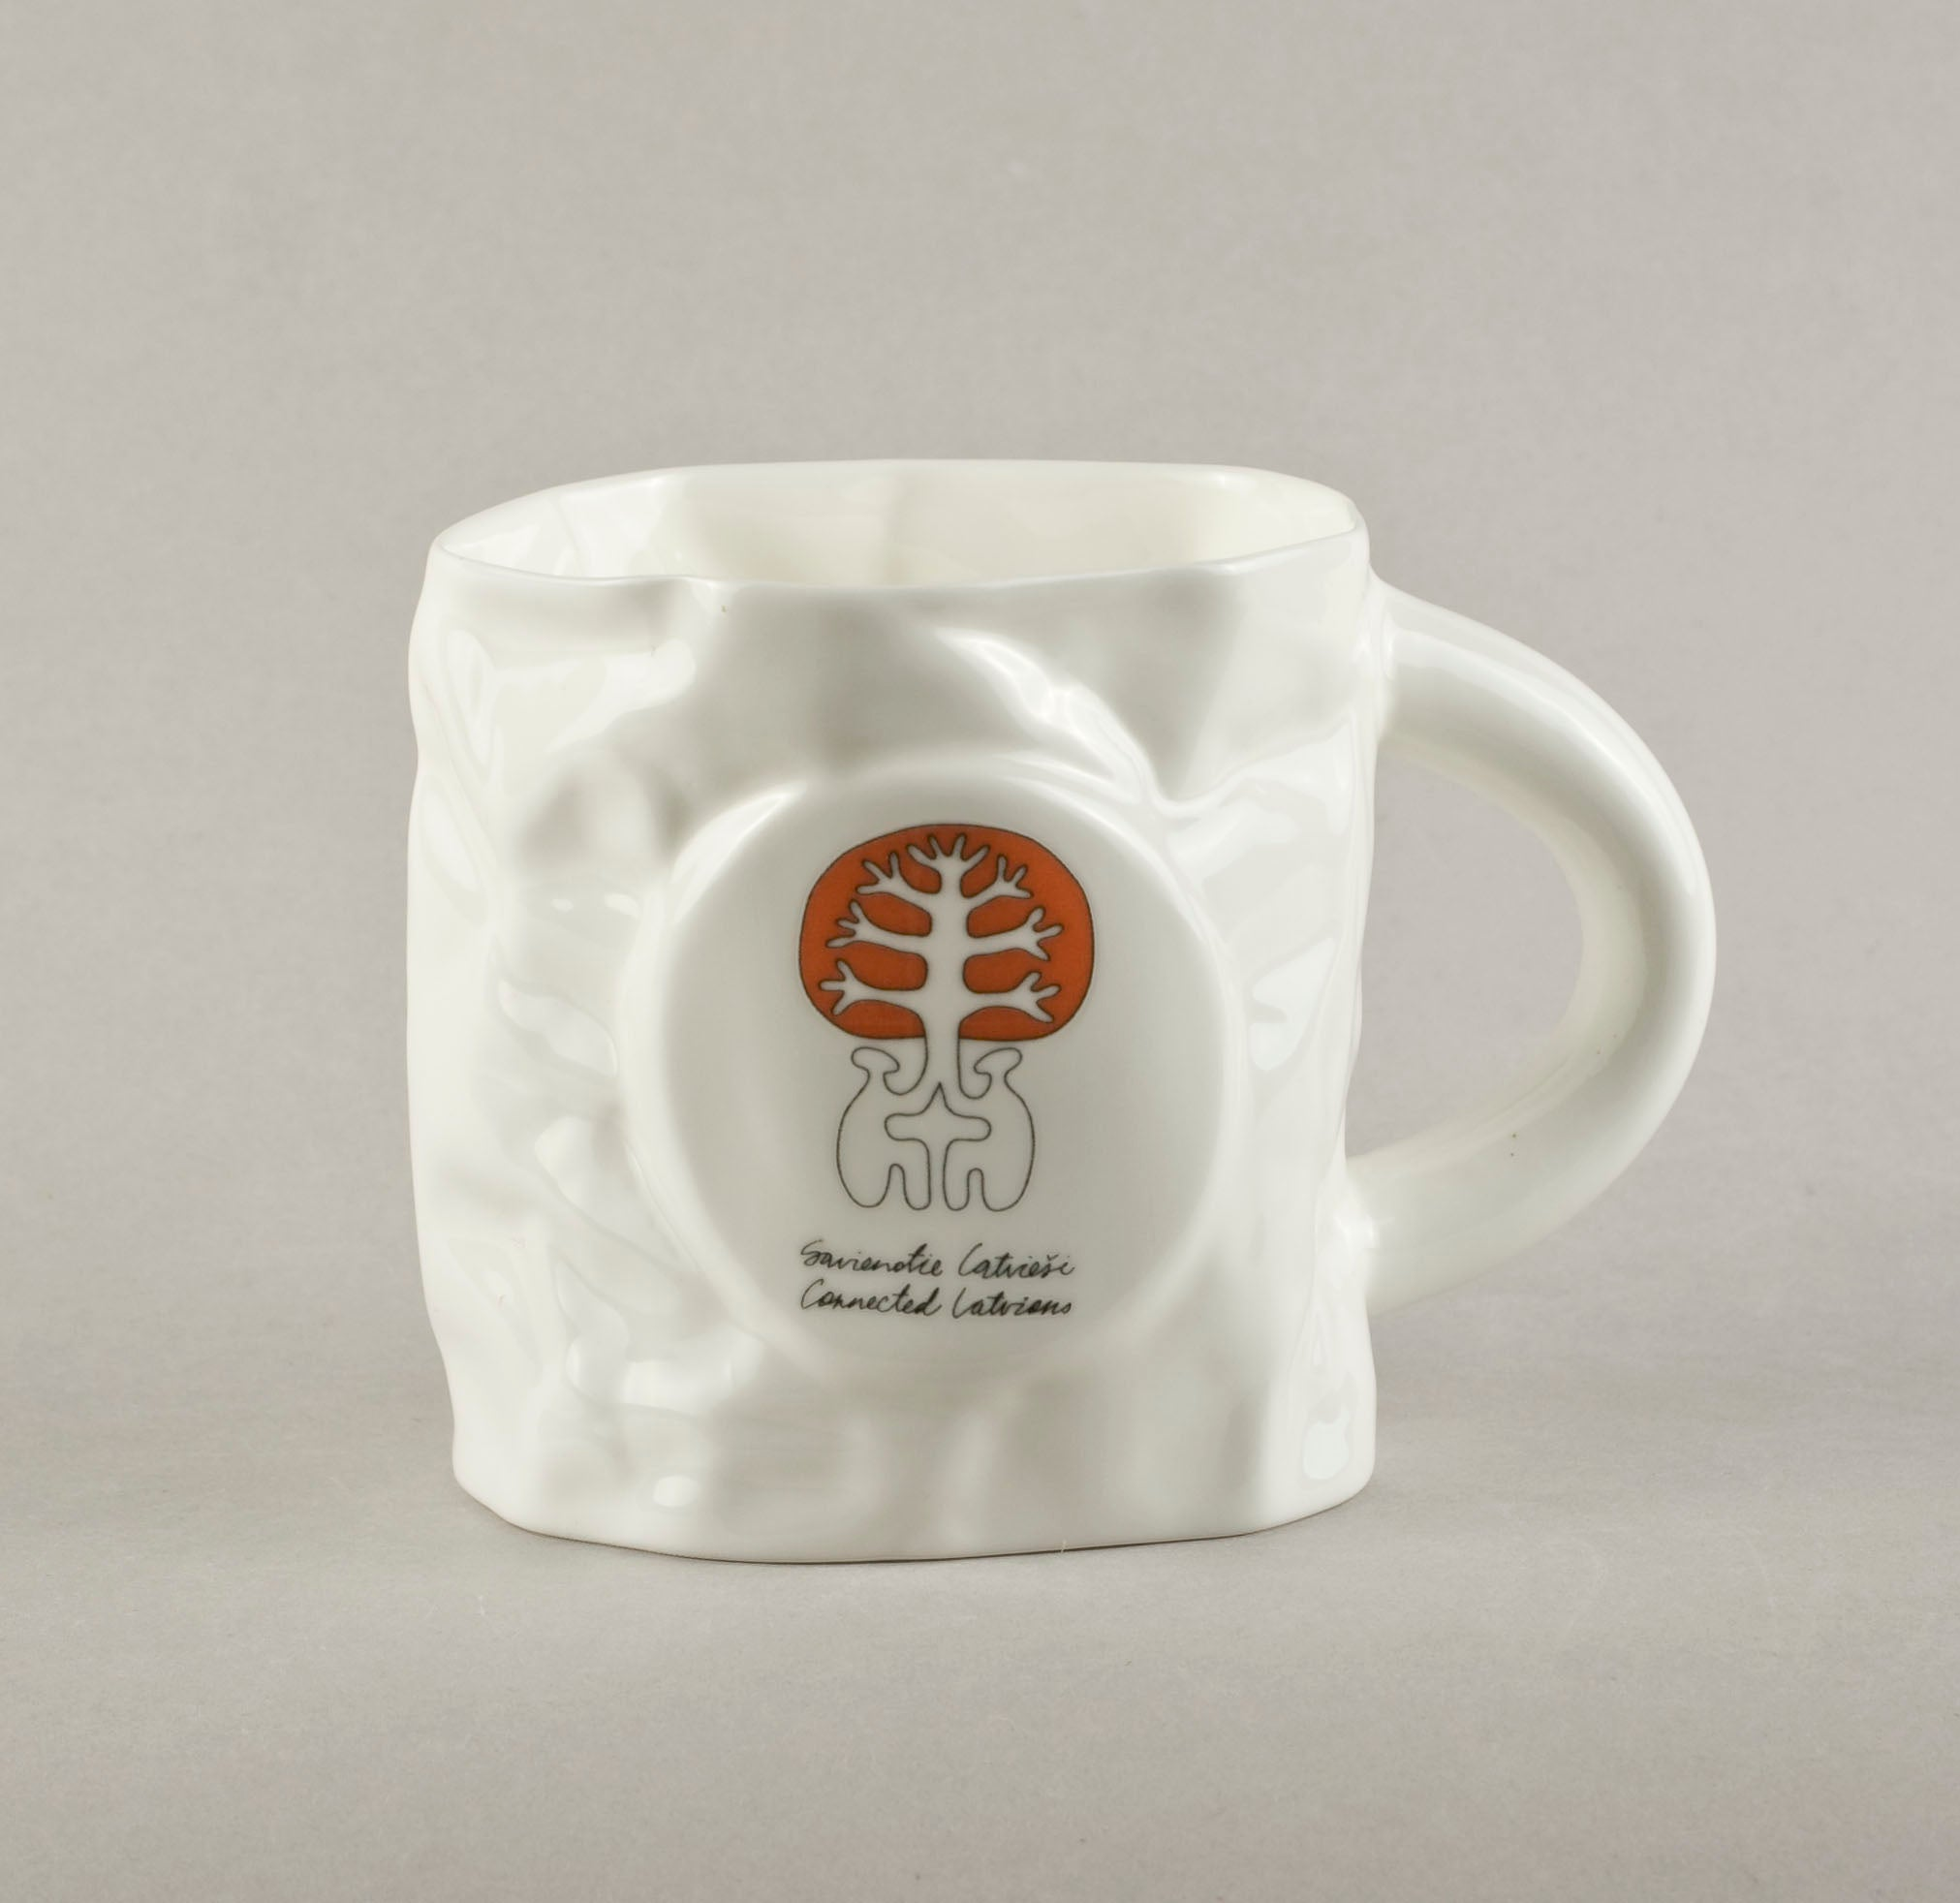 Connected Latvians. Crumpled Tea Mug